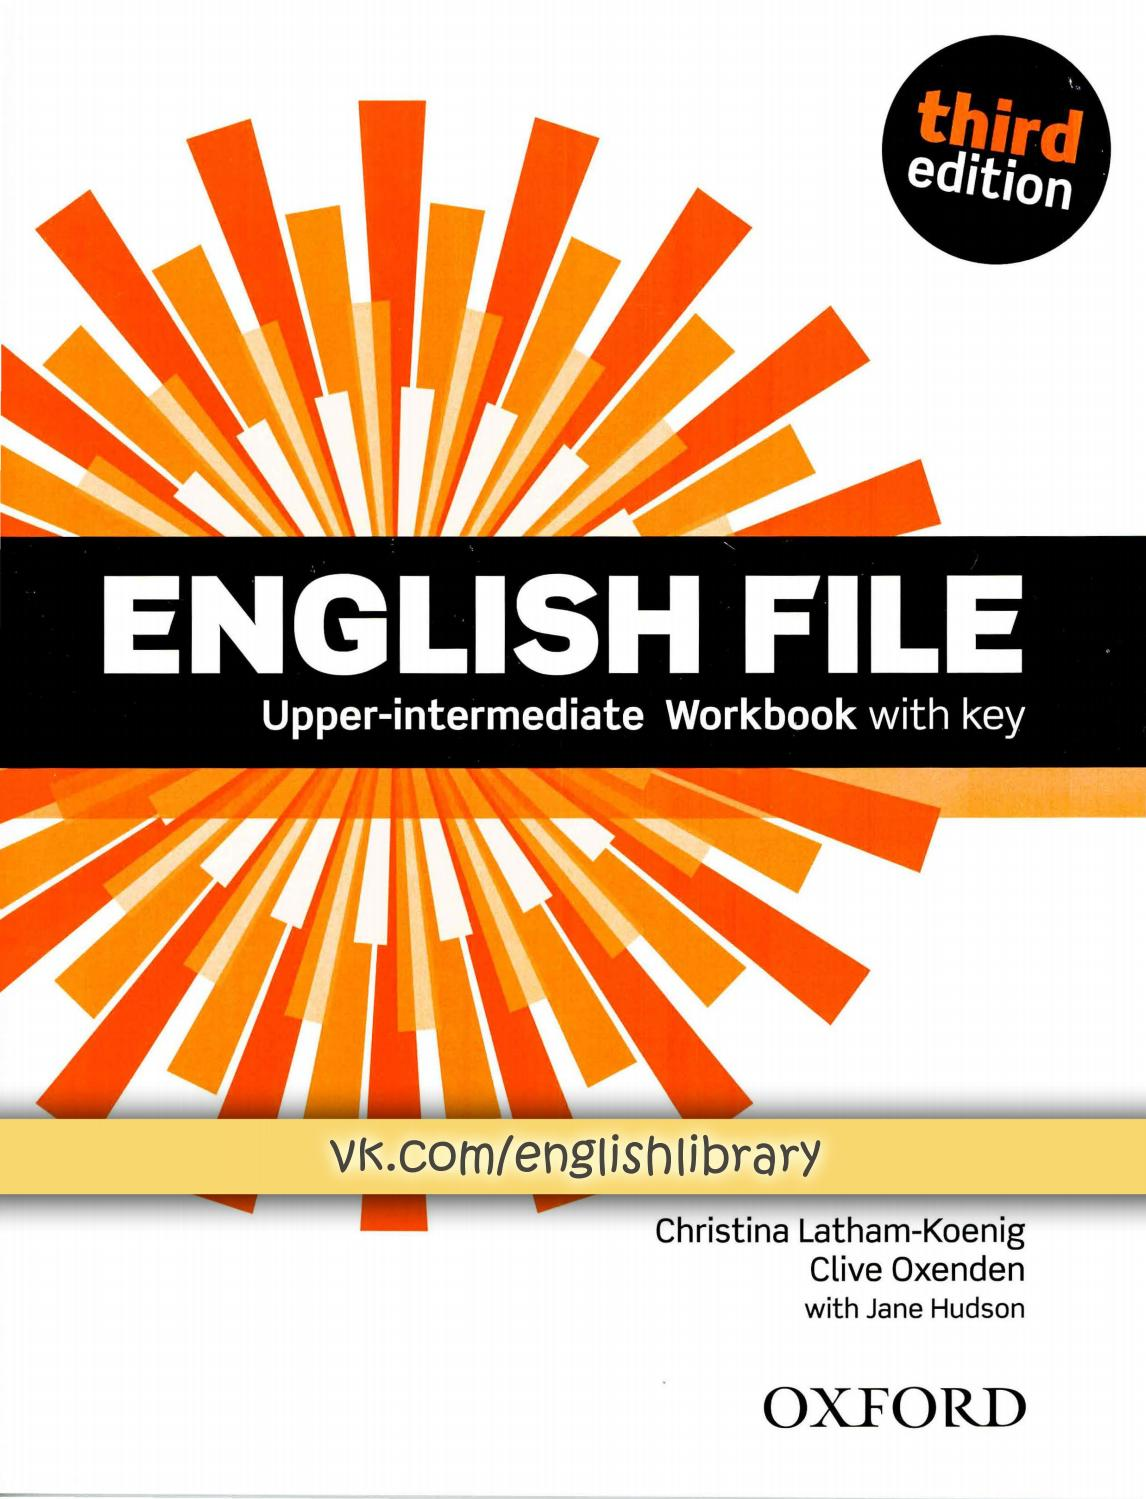 English File Upper Intermediate Student S Book With Workbook With Answersisbn 978 0 19 455850 1 By Dana Valles Issuu